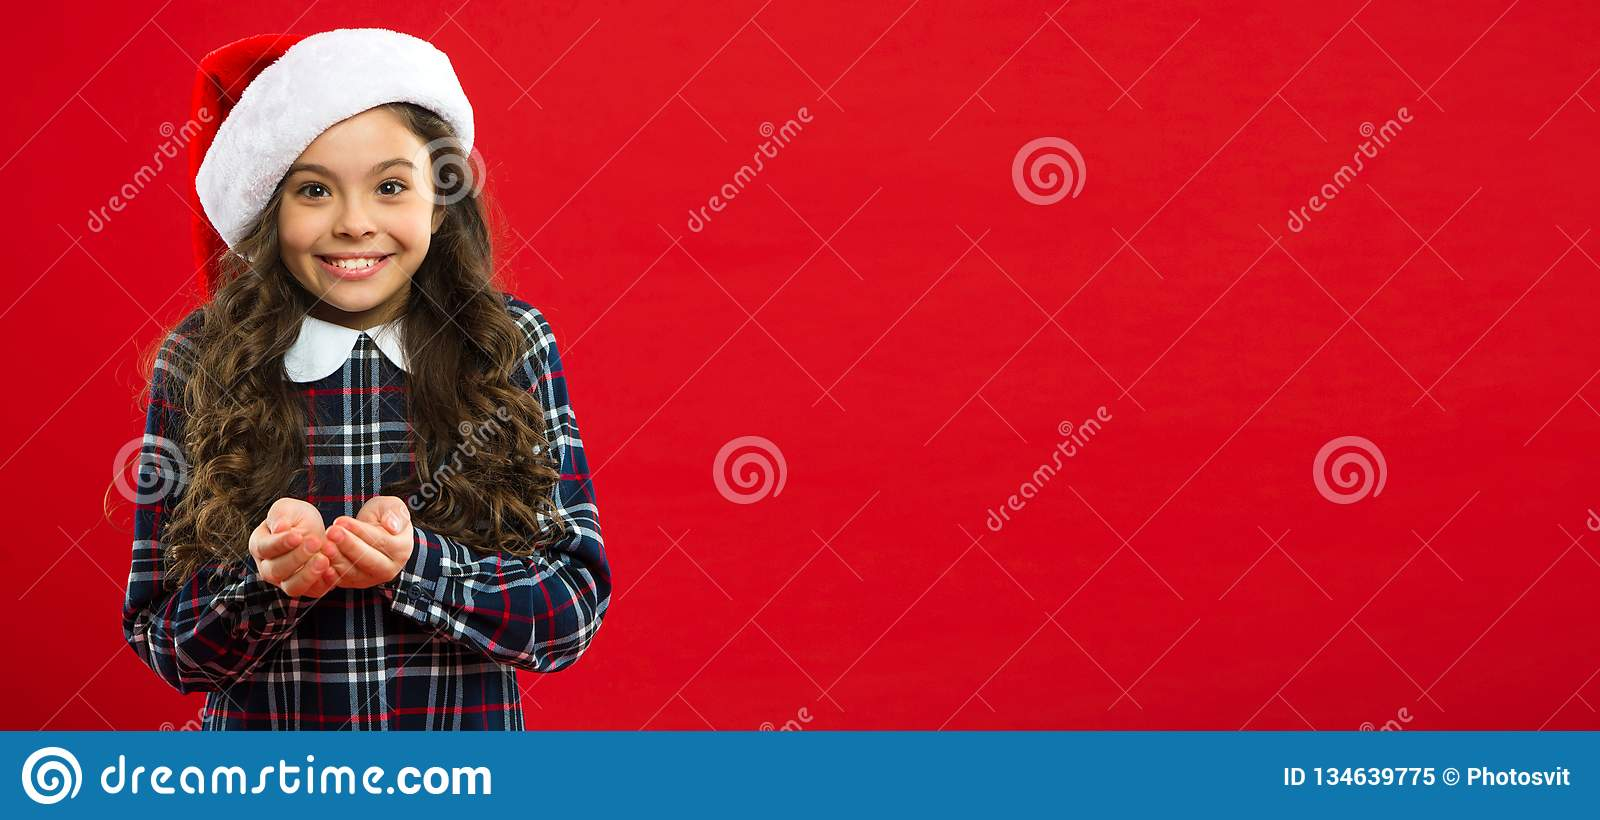 Present for Xmas. Childhood. New year party. Santa claus kid. Christmas shopping. Happy winter holidays. Small girl